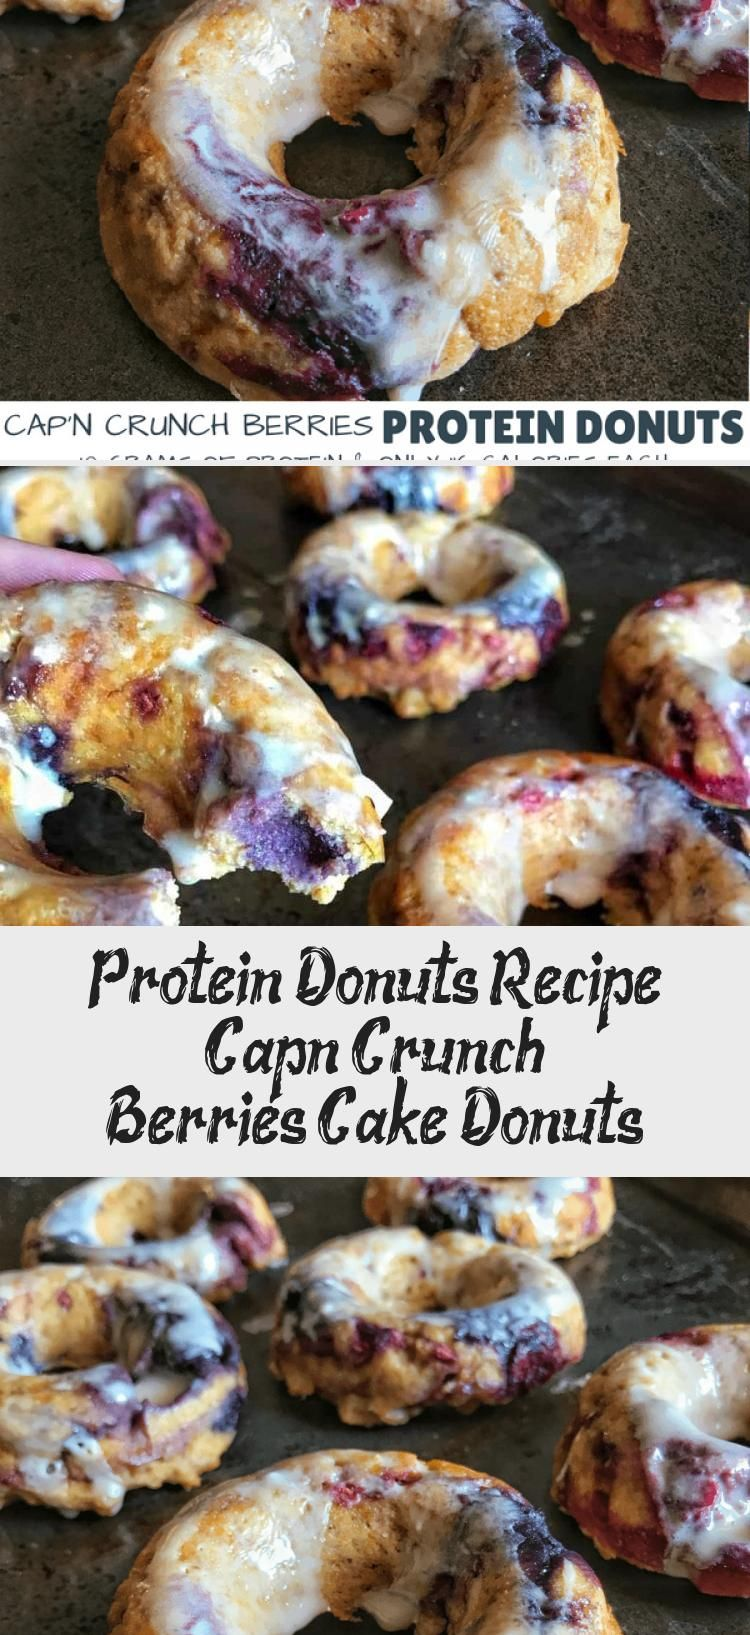 Protein Donuts Recipe: Cap'n Crunch Berries Cake Donuts #proteindonuts